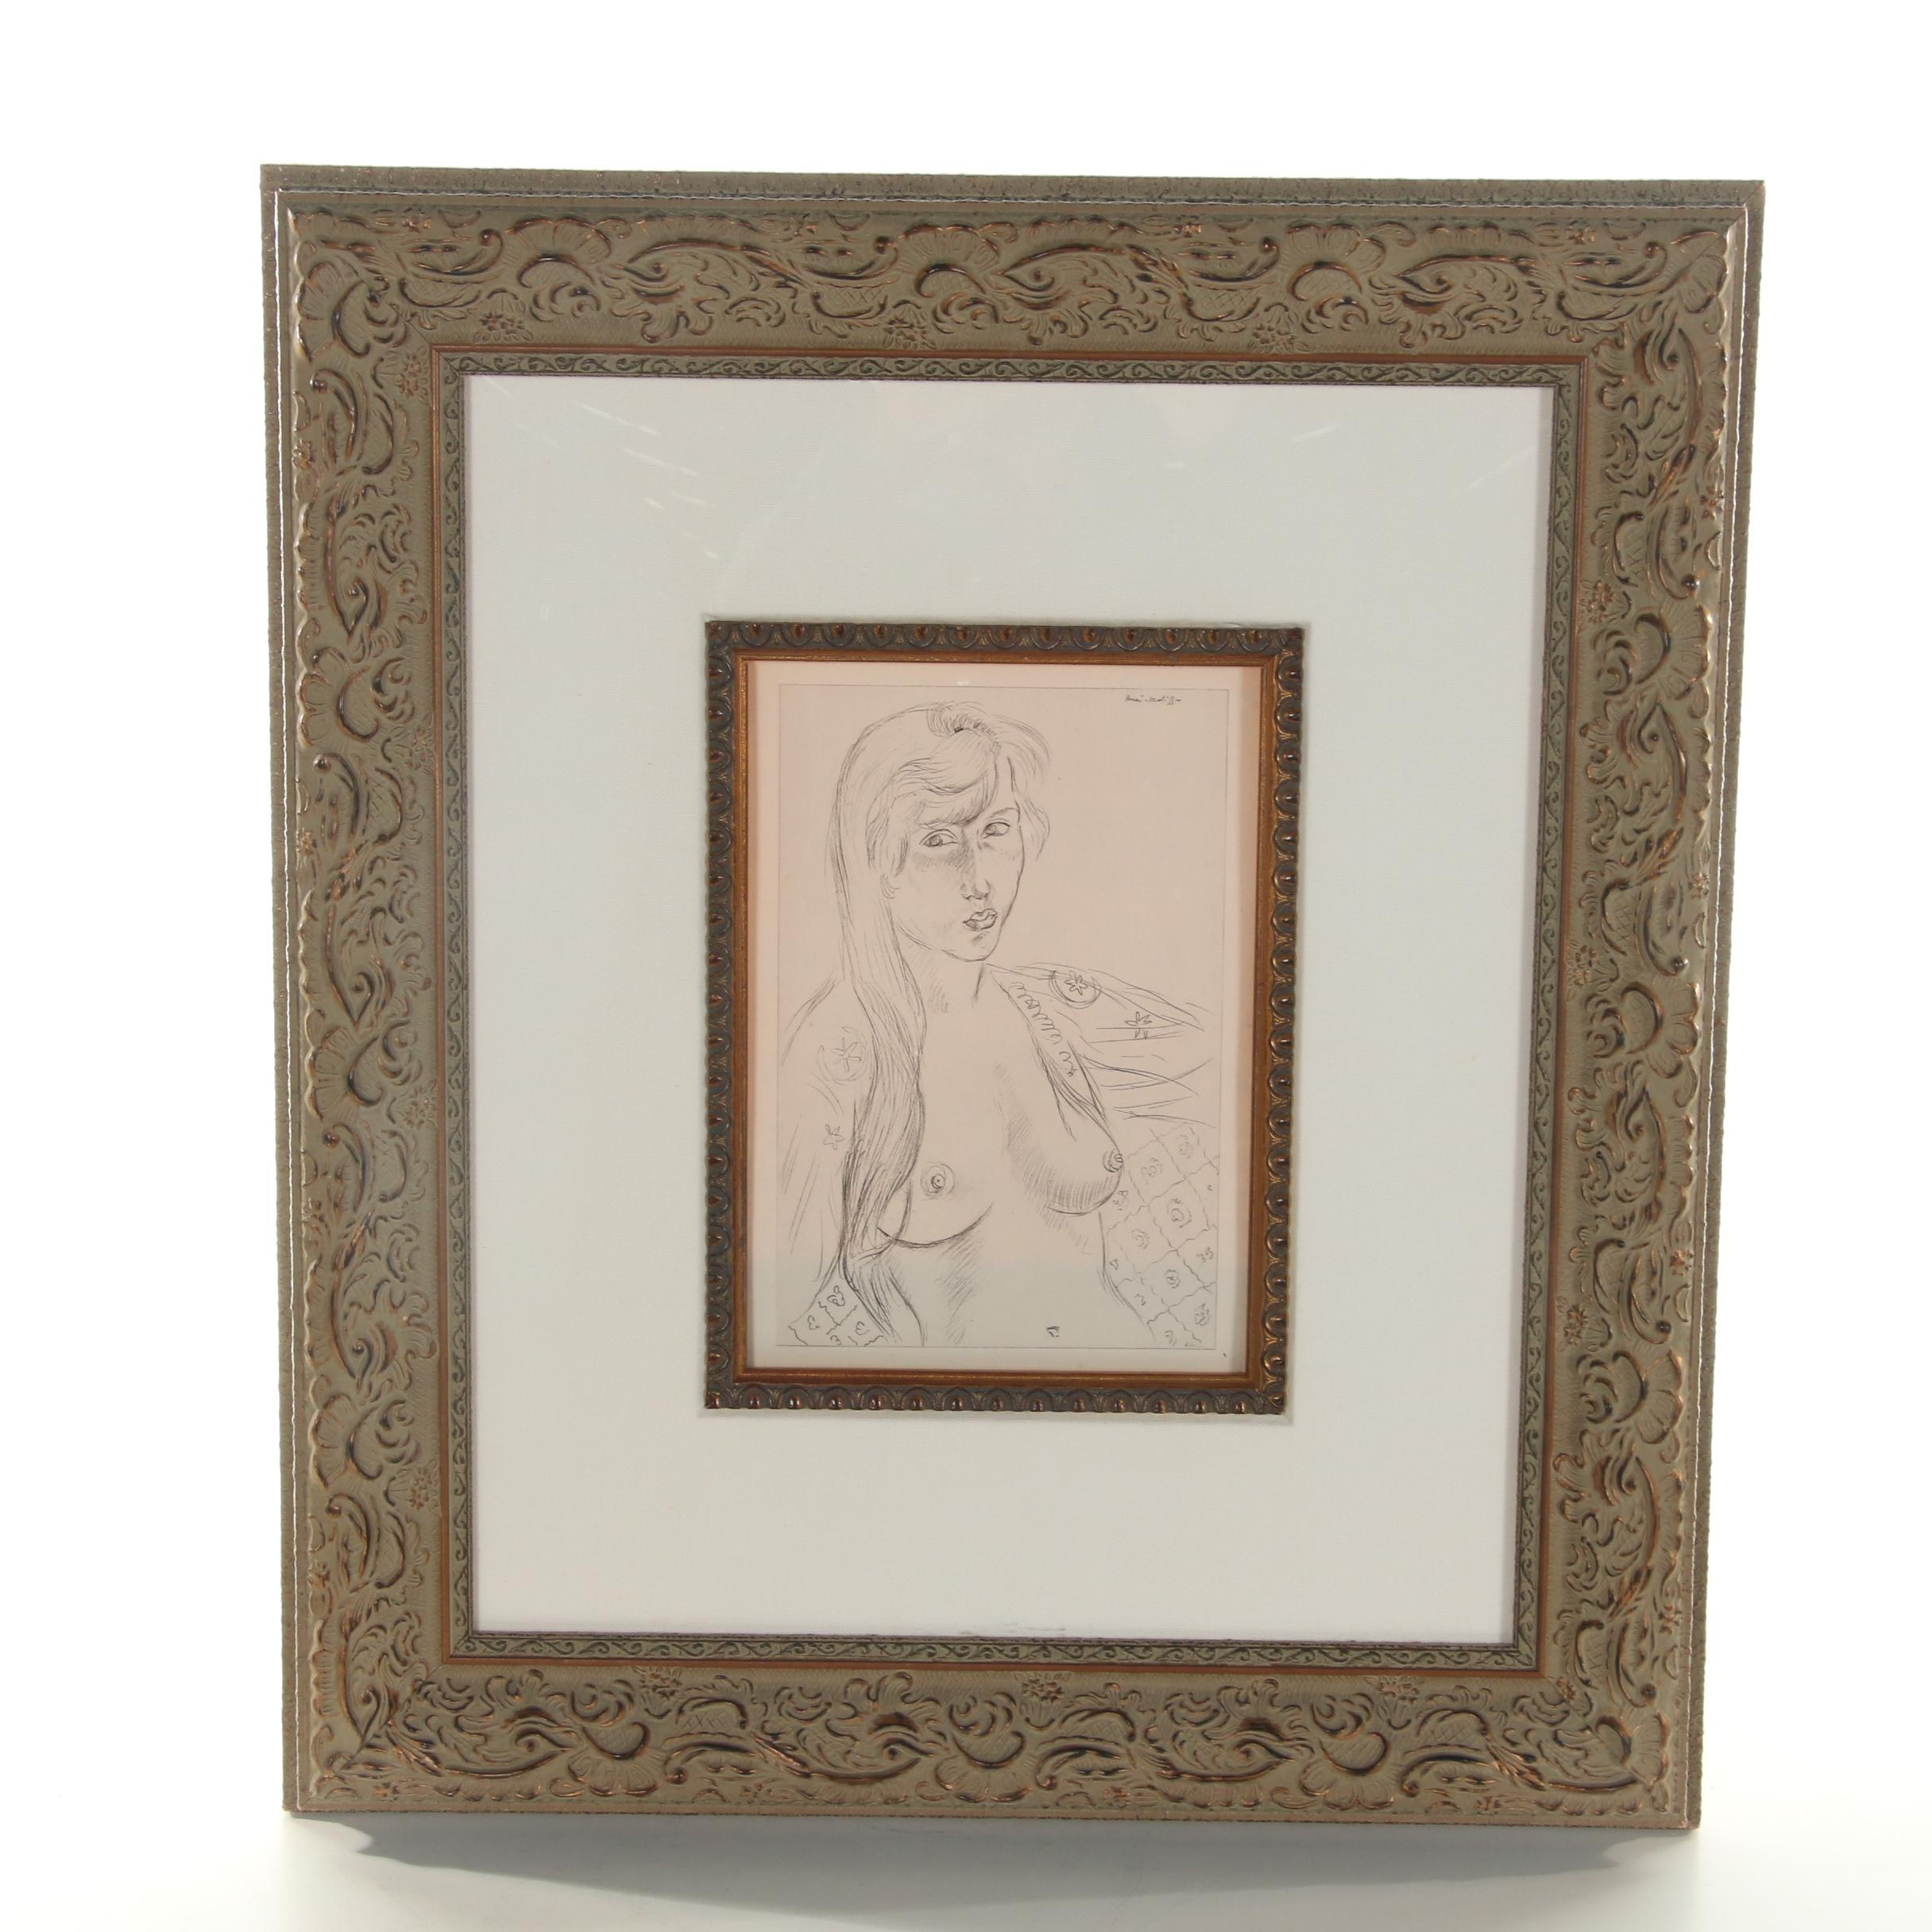 Reproduction Lithograph after Henri Matisse